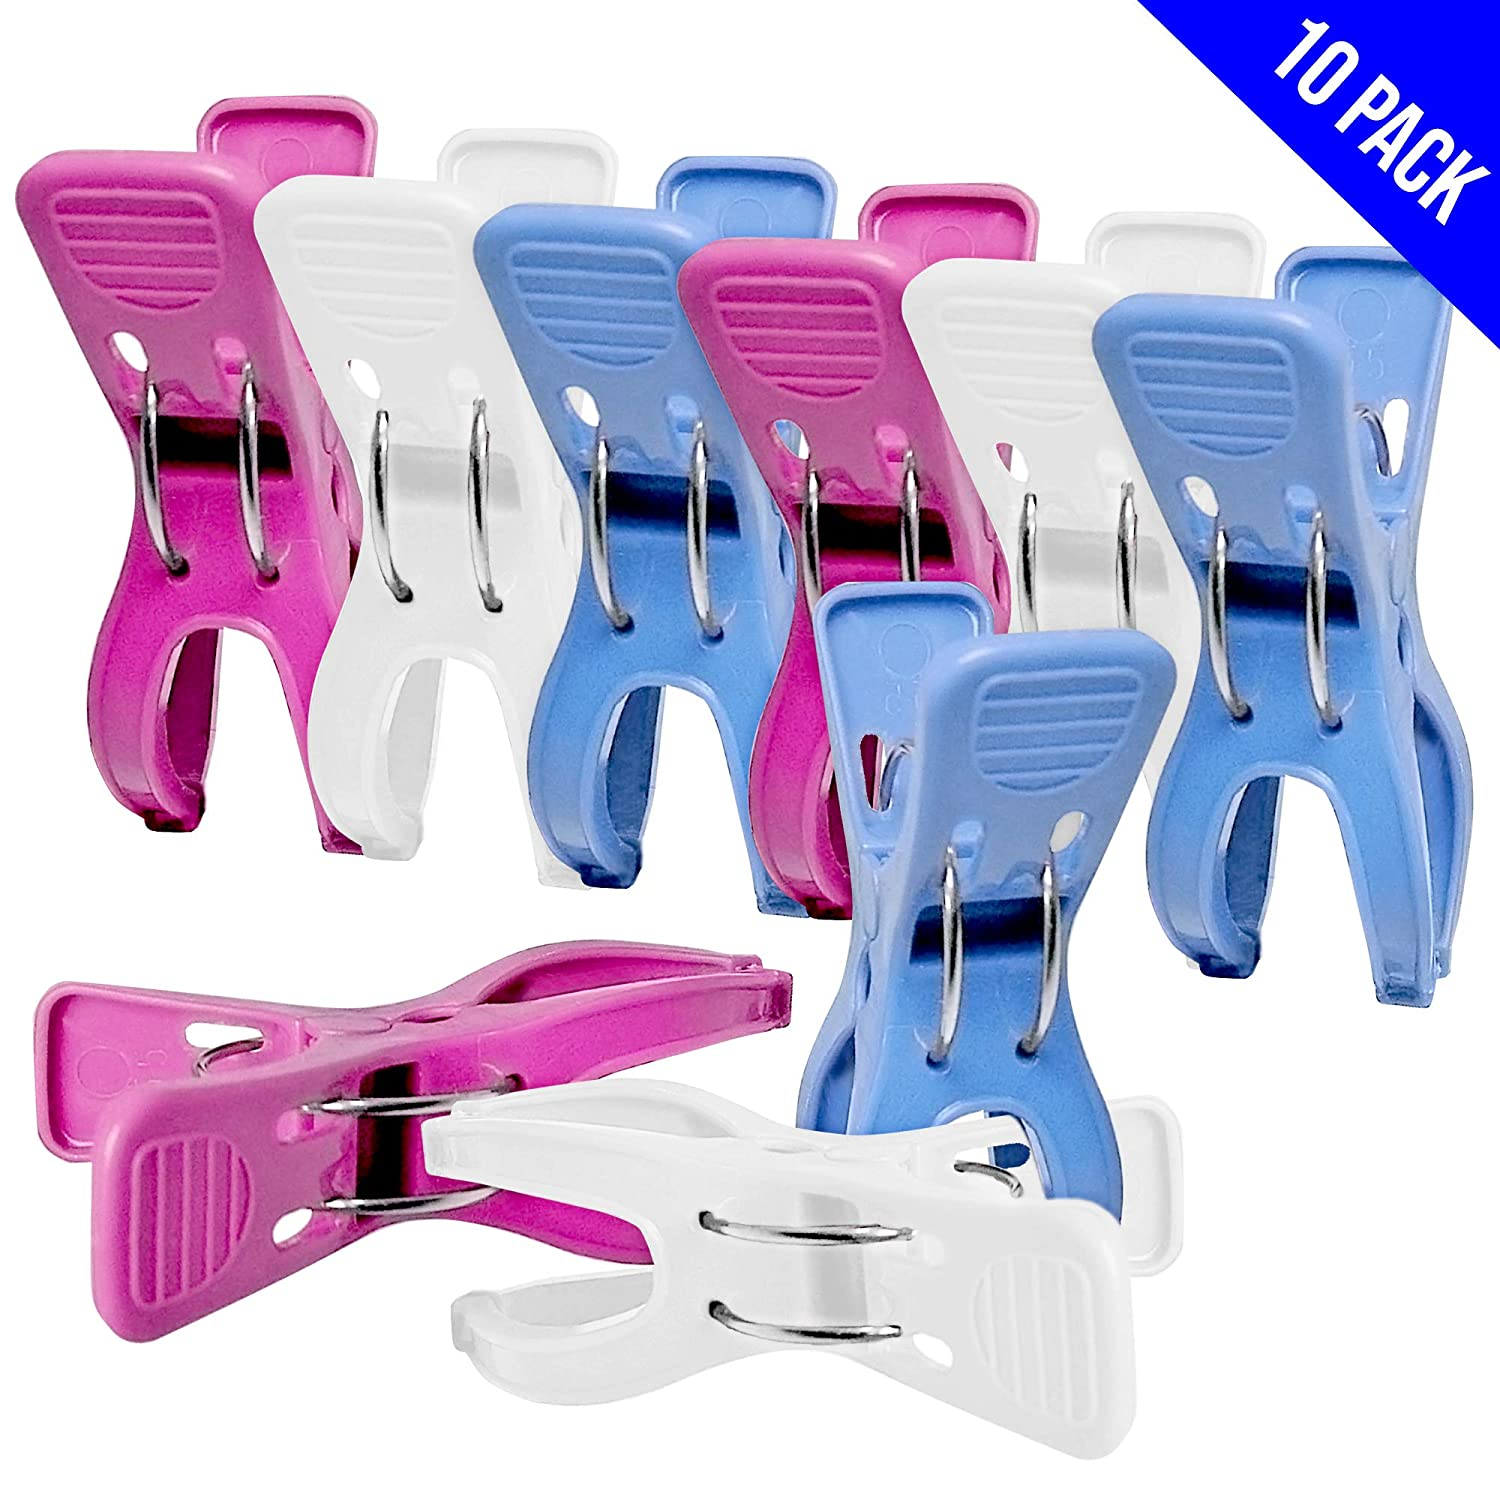 Towel Pegs 10 pcs. Durable Beach Towel Clips for Sunbeds in Bright Colours Hold in Place your Large Beach Towels in the Summer or your Heavy Laundry. (Multi) Volila